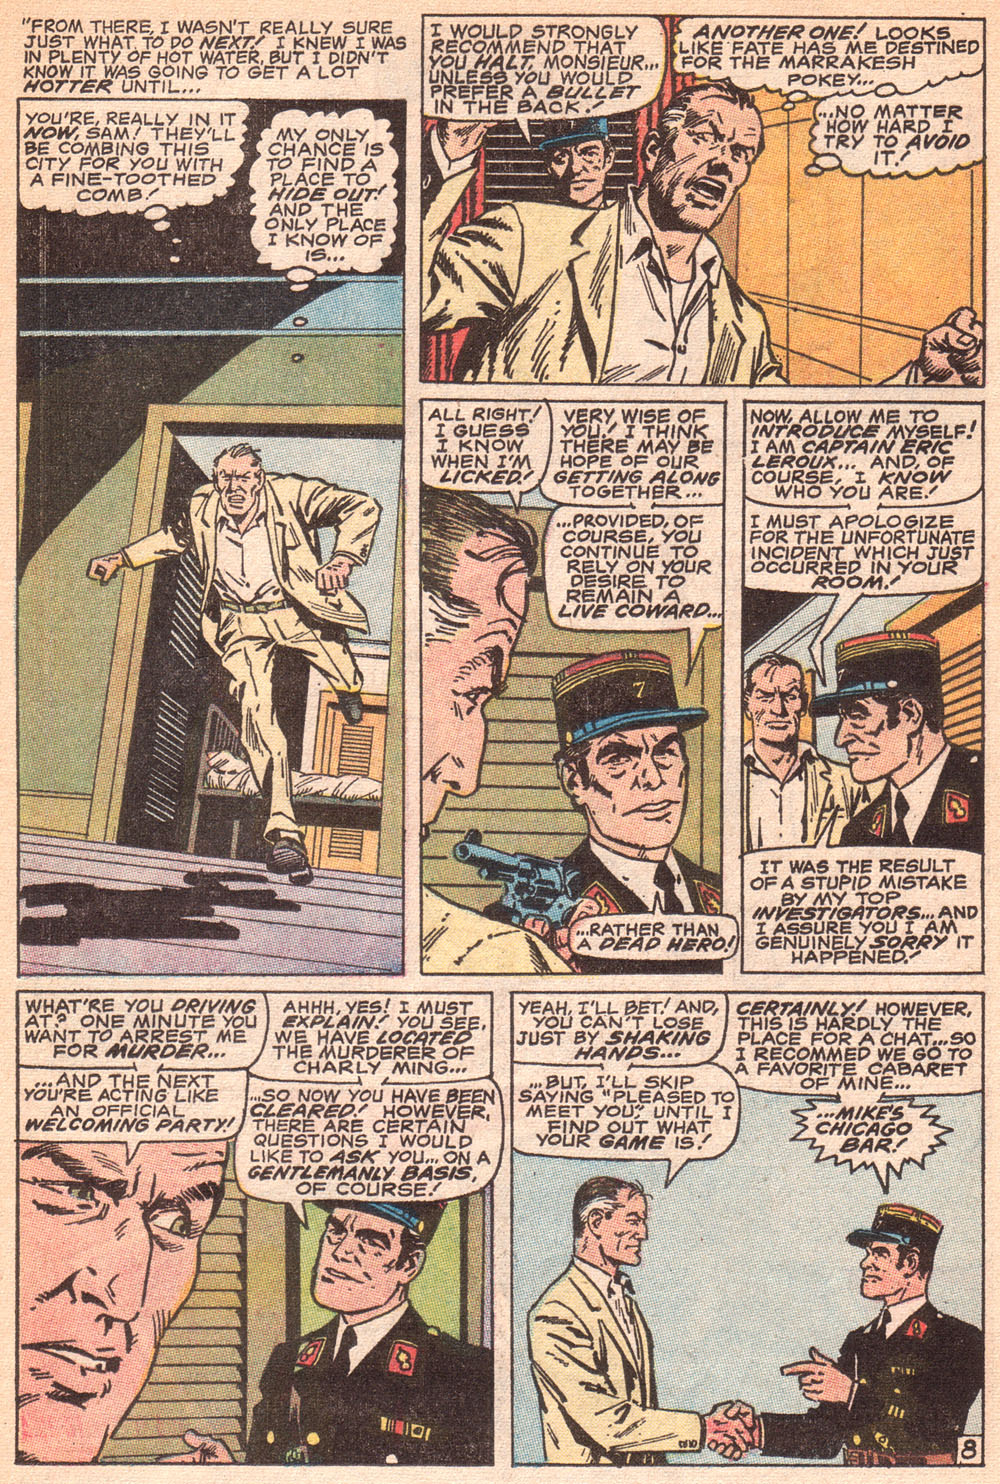 Read online Sgt. Fury comic -  Issue #72 - 13